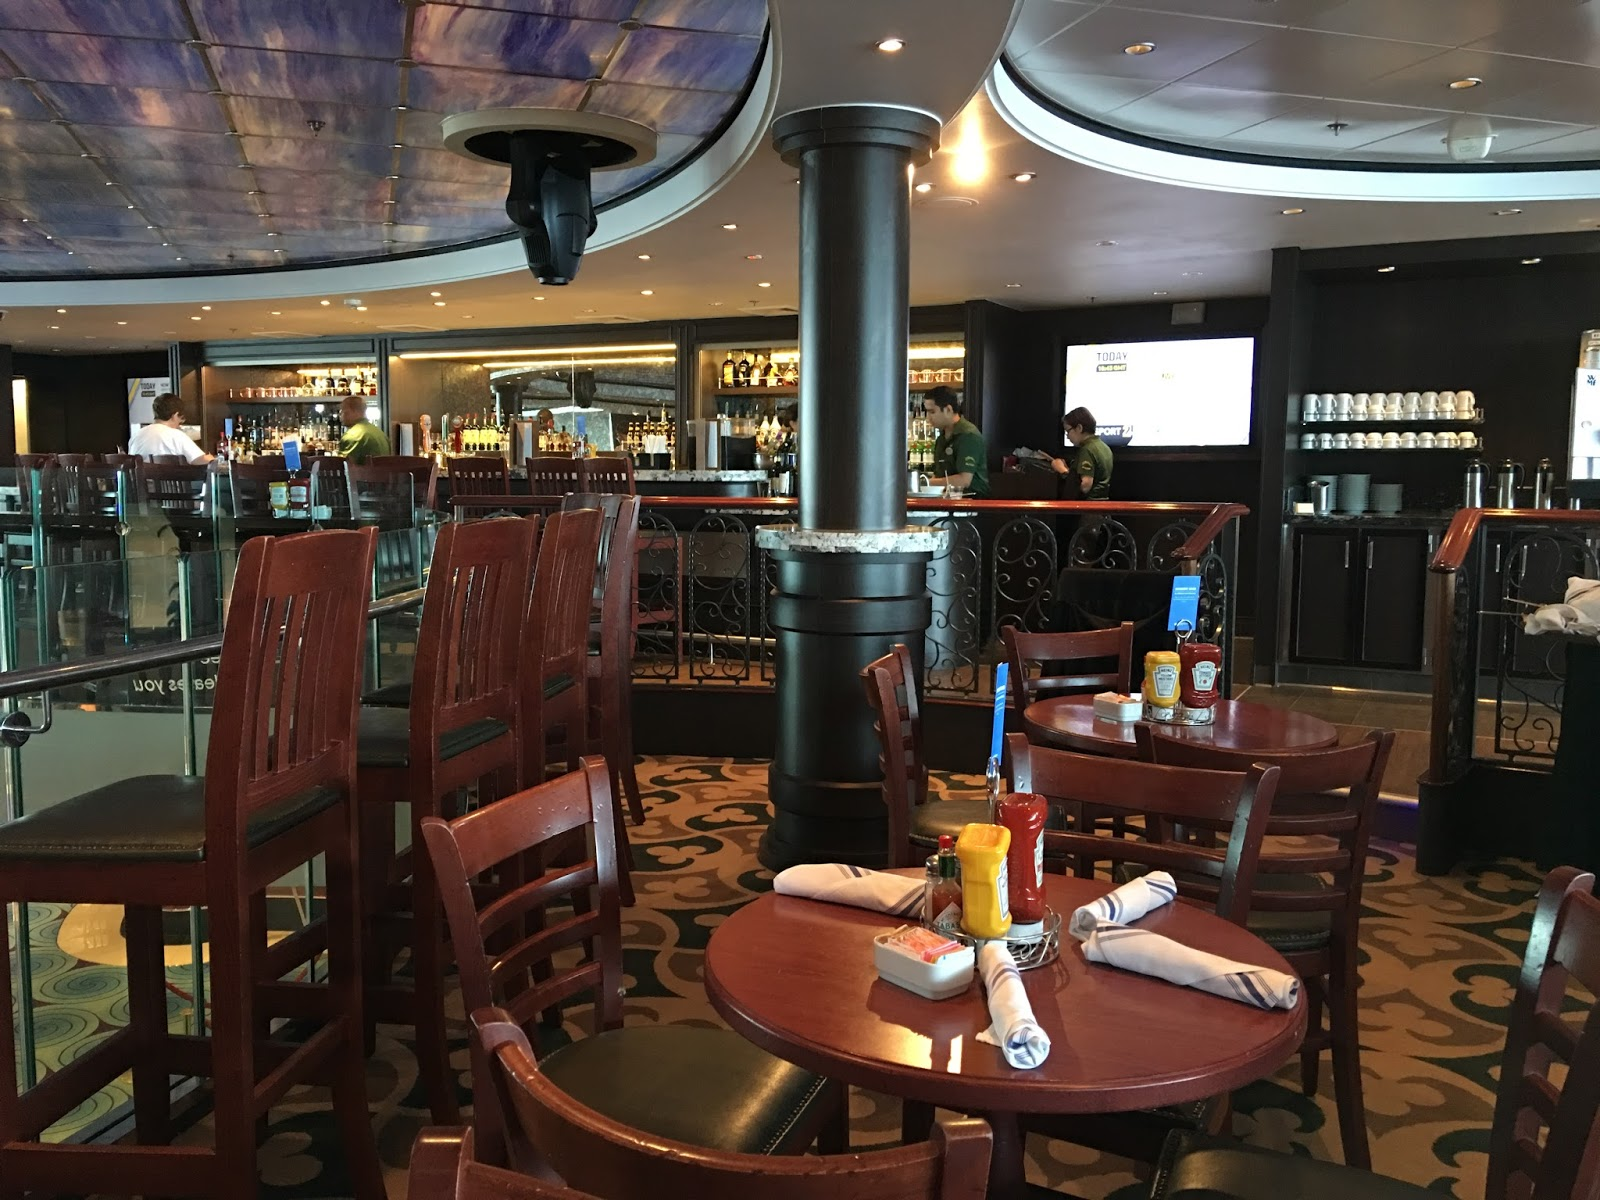 Norwegian Jewel La Cucina Menu The Cheerful Cruiser The Norwegian Pearl Cruise Review